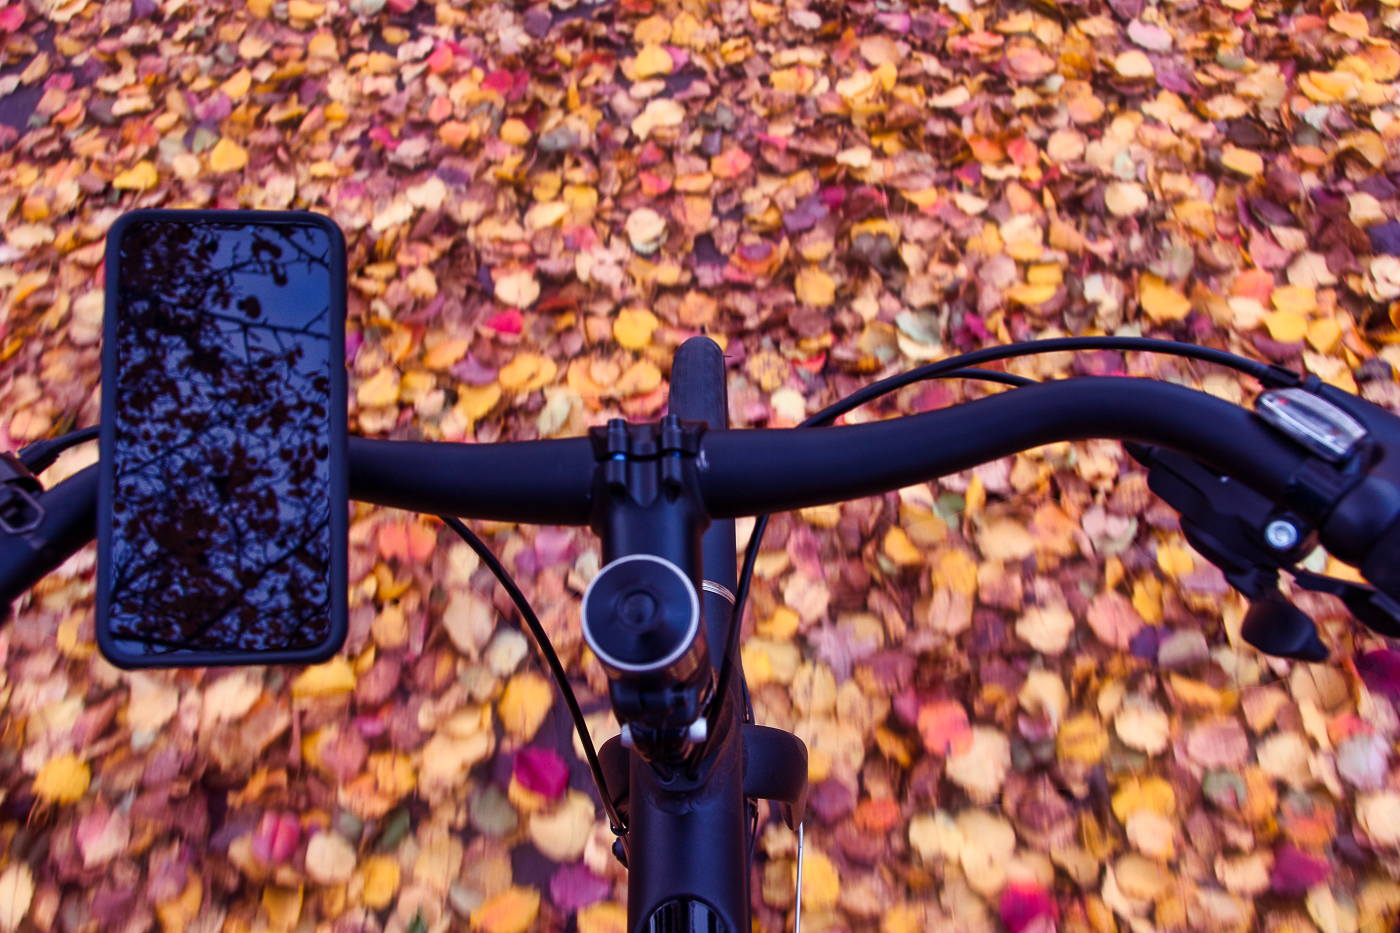 cyclingovertheleaves.jpg